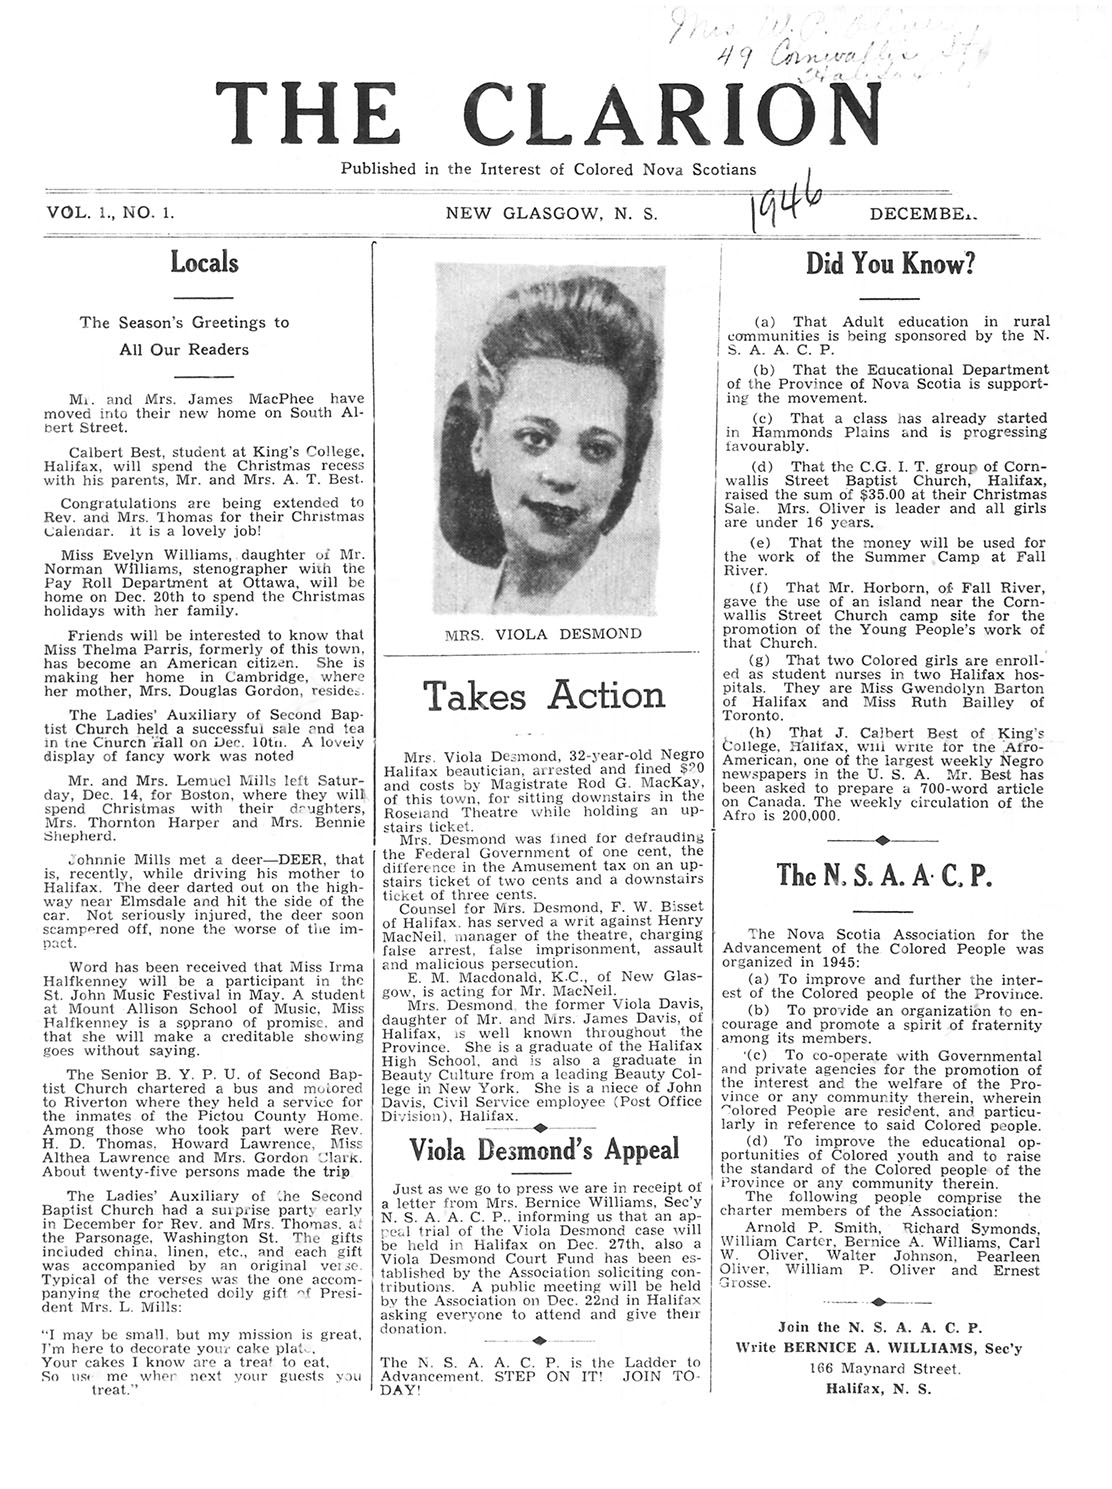 Viola Desmond on the Cover of The Clarion